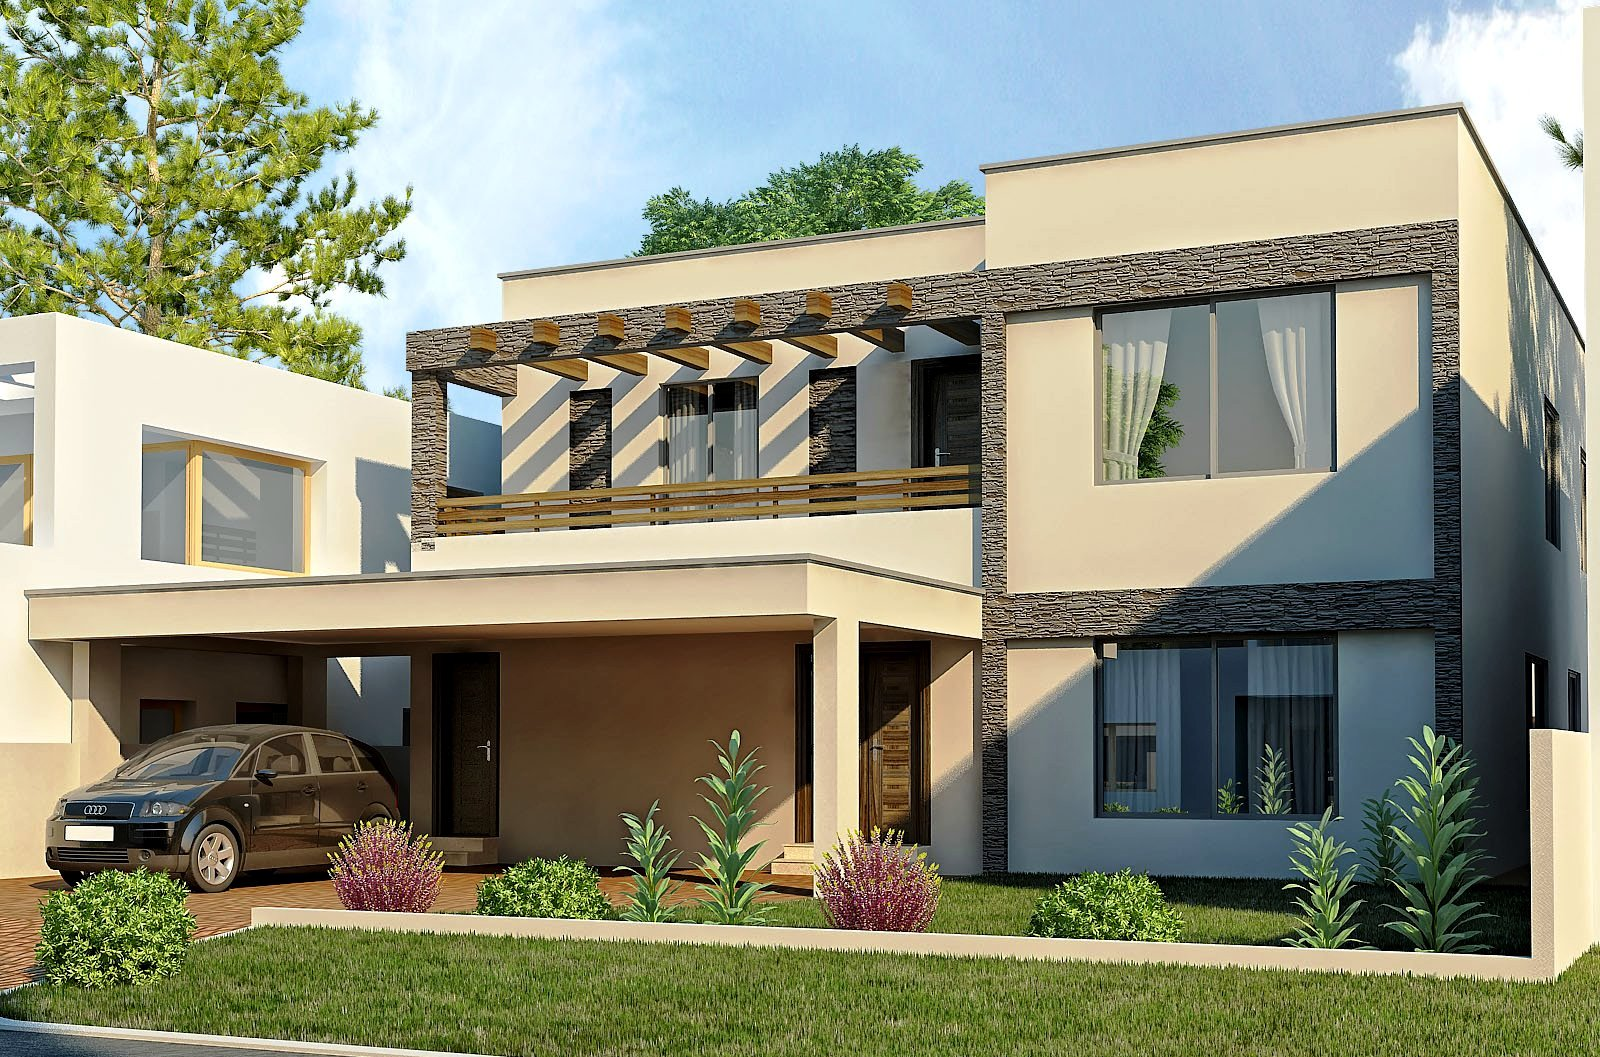 New home designs latest modern homes exterior designs views for Contemporary house exterior